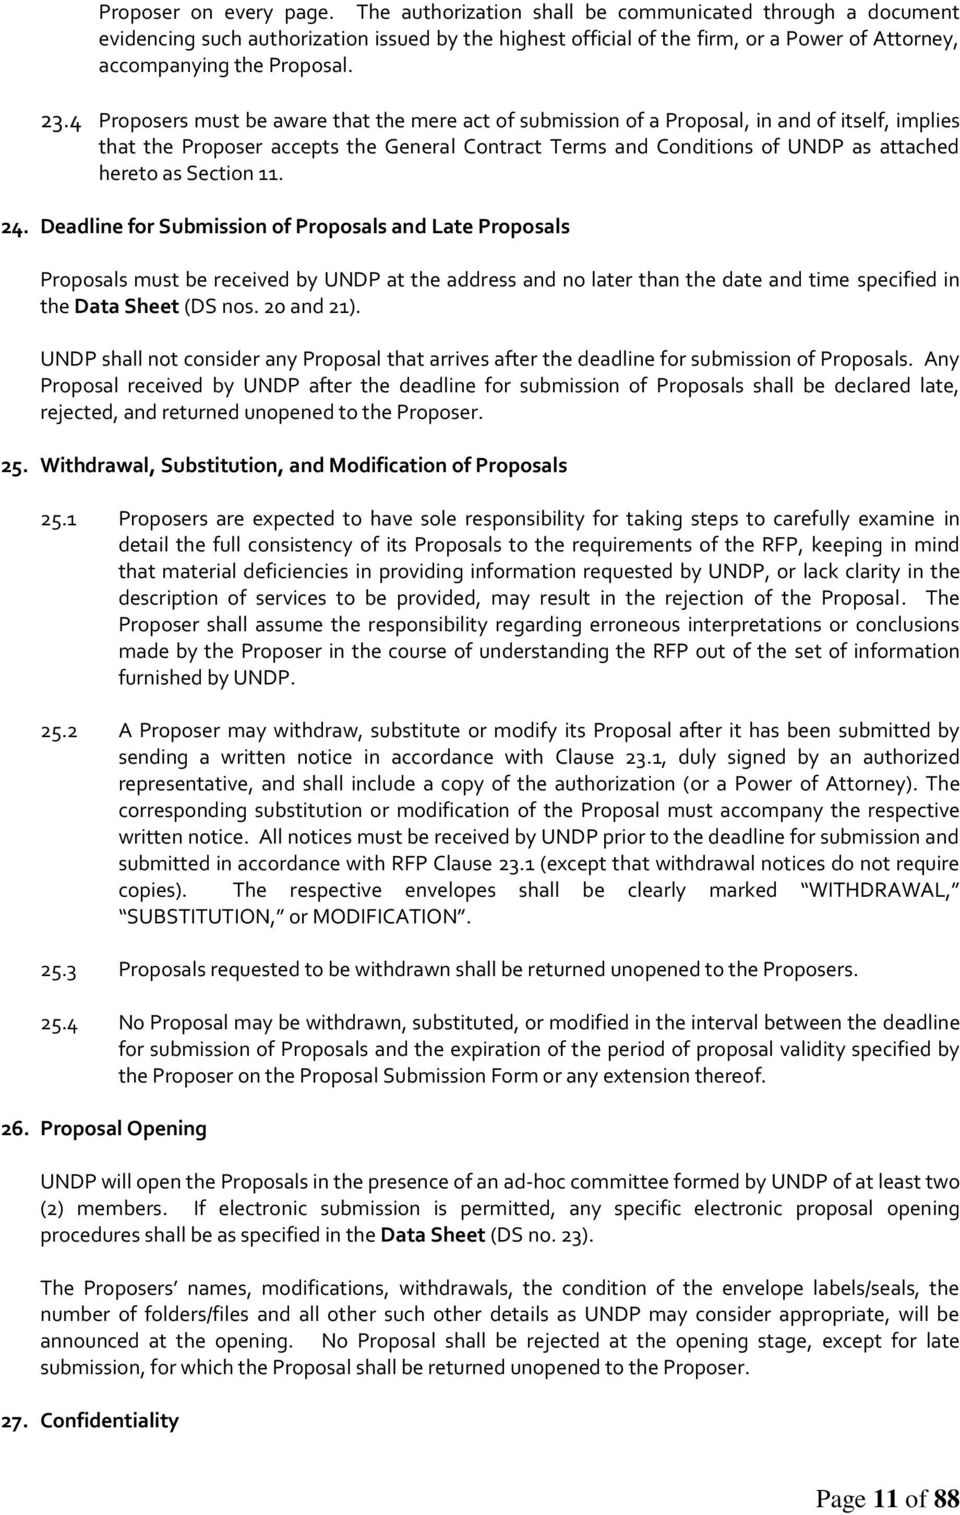 4 Proposers must be aware that the mere act of submission of a Proposal, in and of itself, implies that the Proposer accepts the General Contract Terms and Conditions of UNDP as attached hereto as